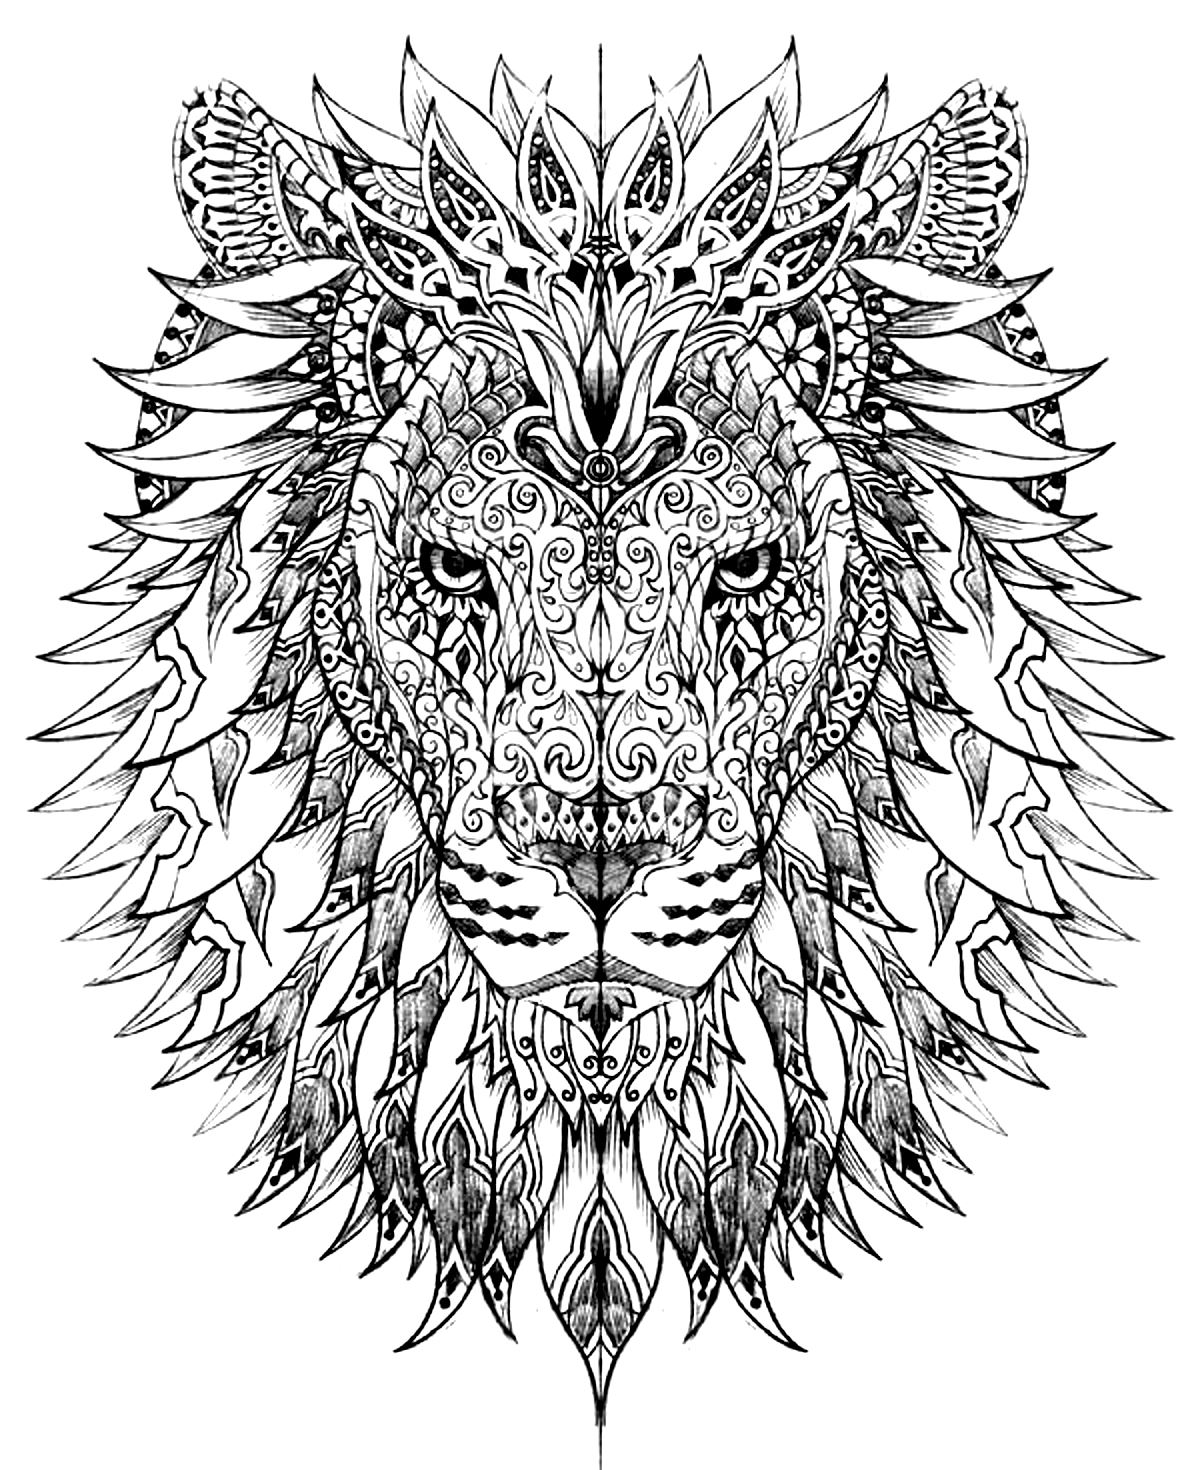 Lion head drawn with very smart and harmonious patterns | From the gallery : /animals